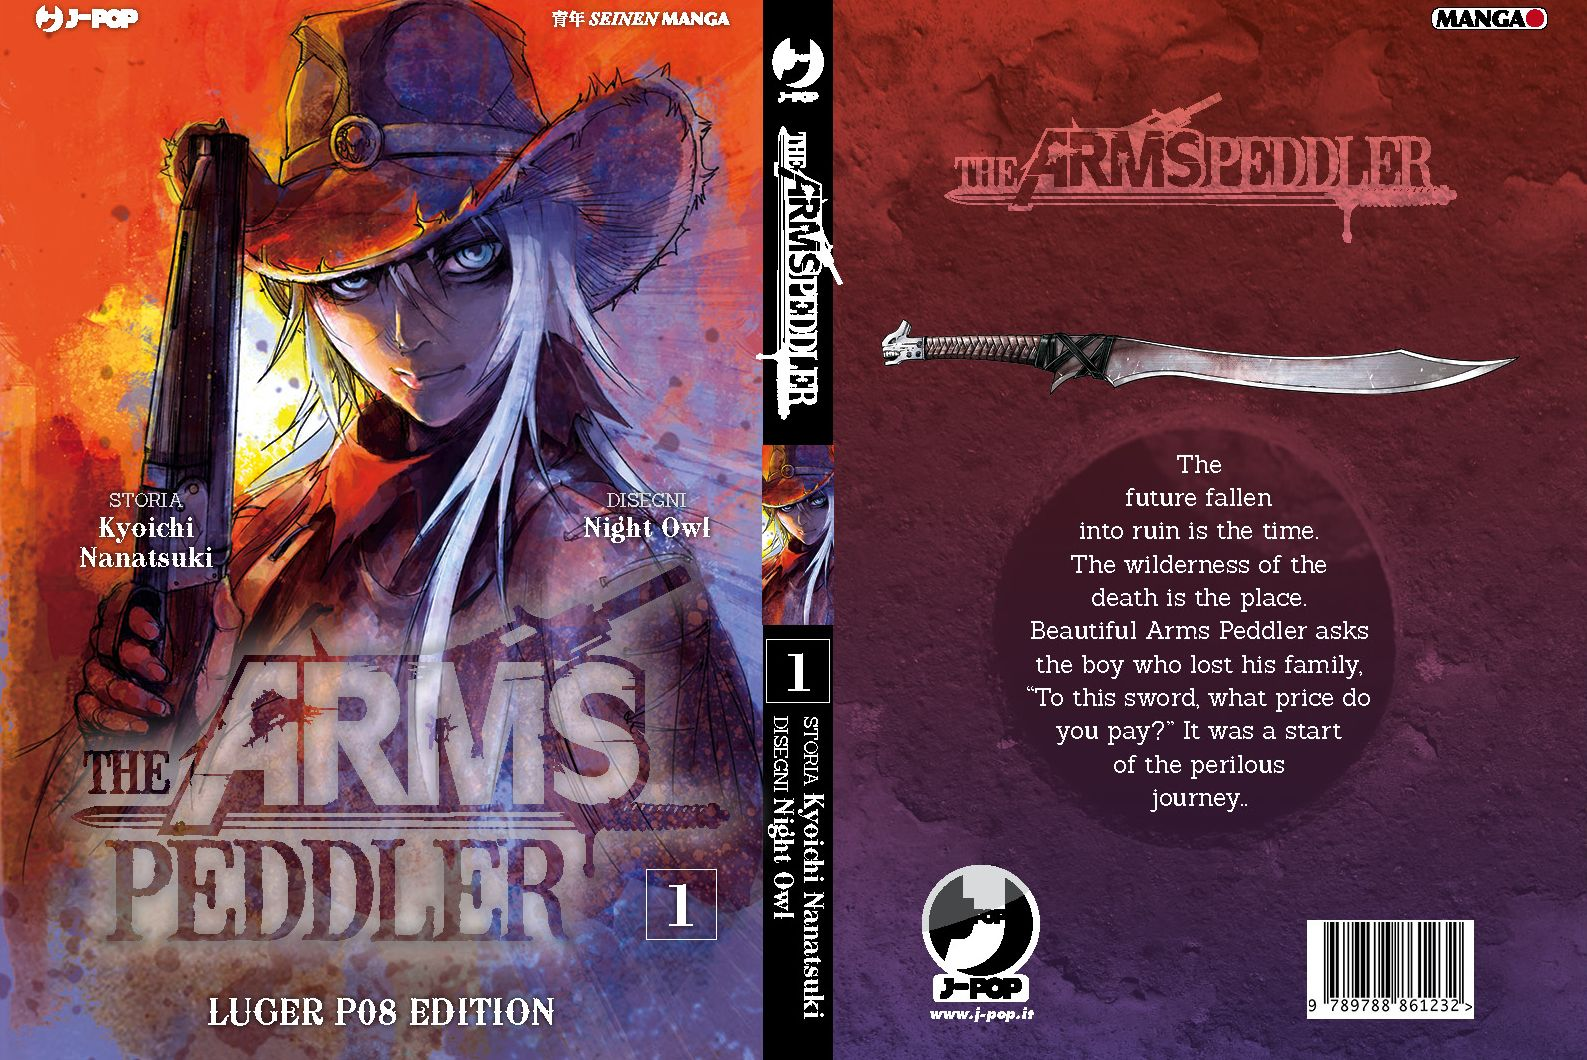 Arms Peddler variant cover limited